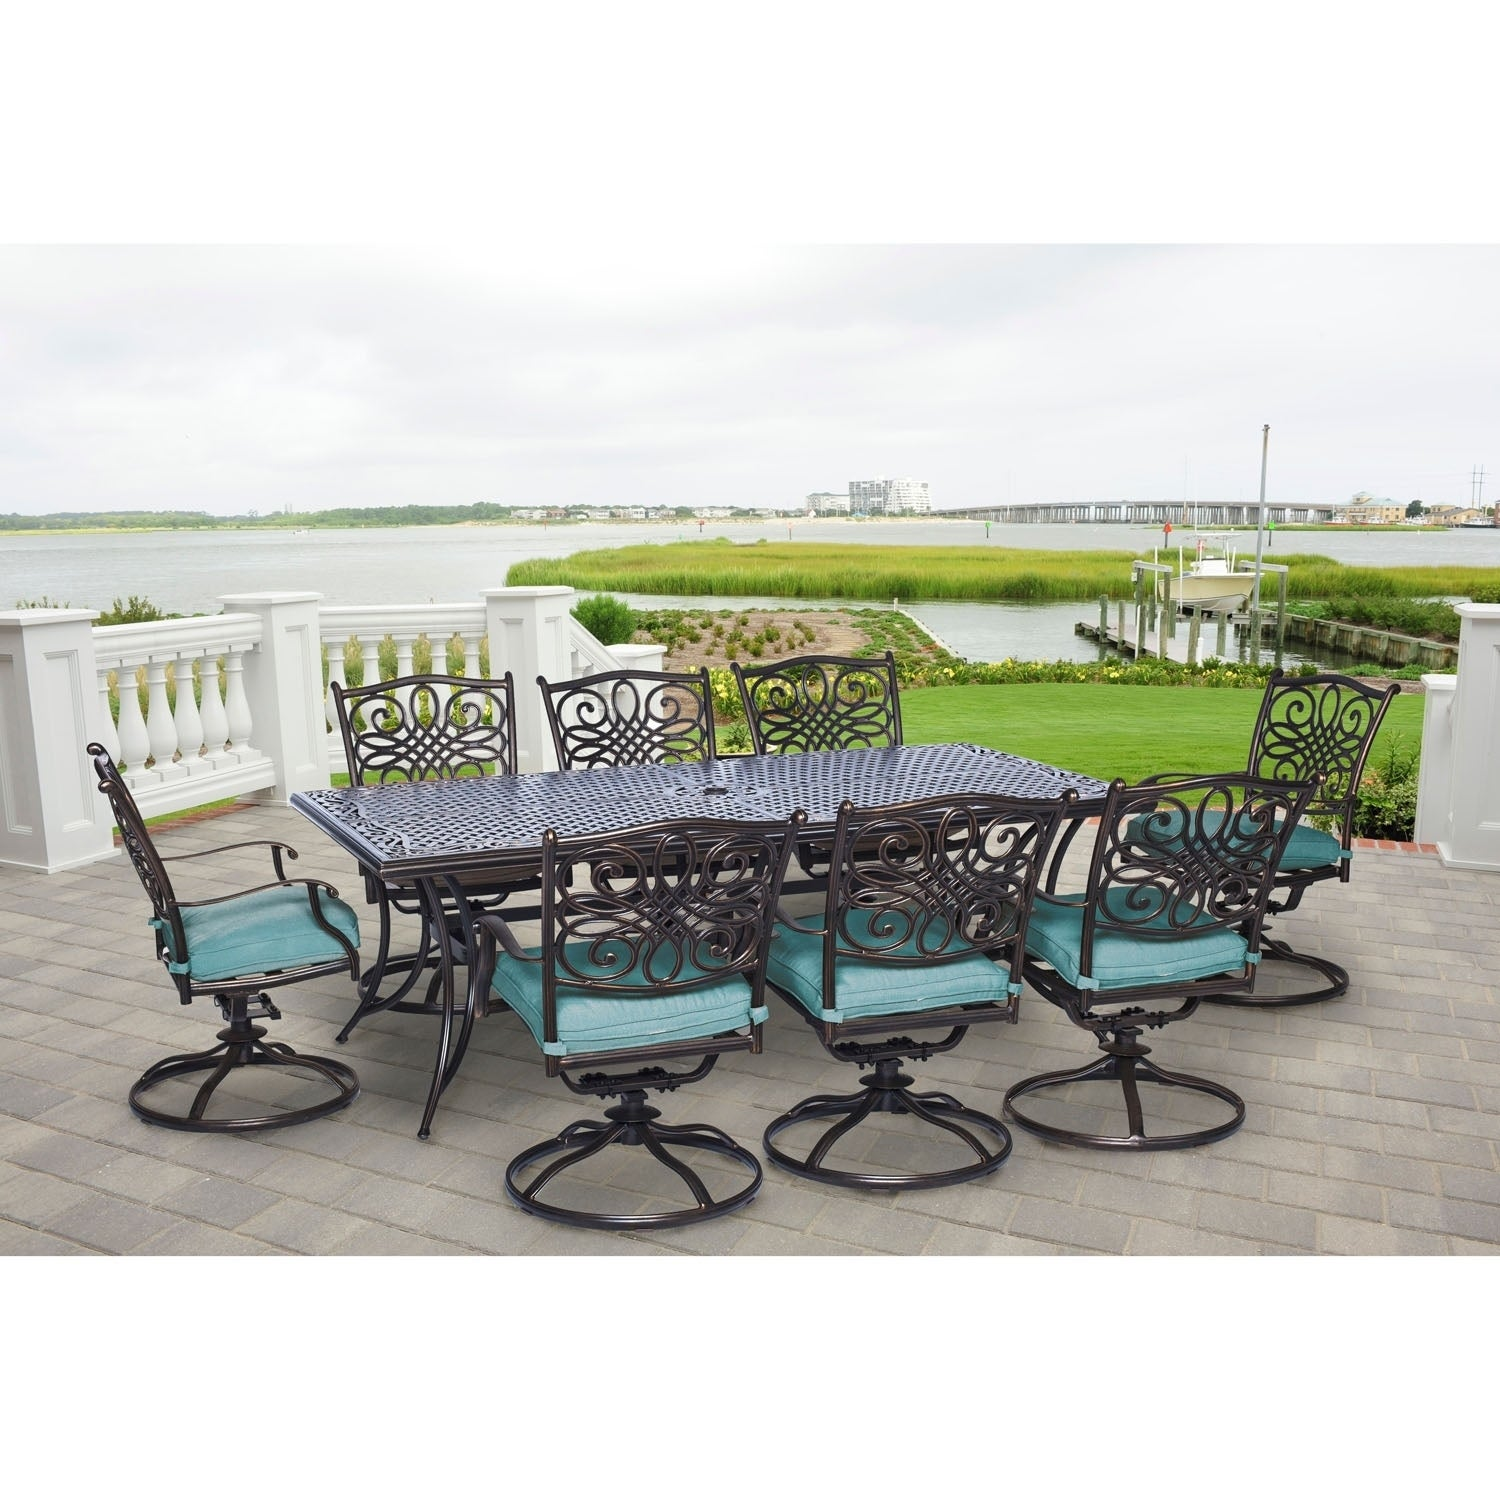 Hanover Outdoor Traditions 9 Piece Dining Set With Eight Swivel Chairs And A Large 84 X 42 In Table Free Shipping Today